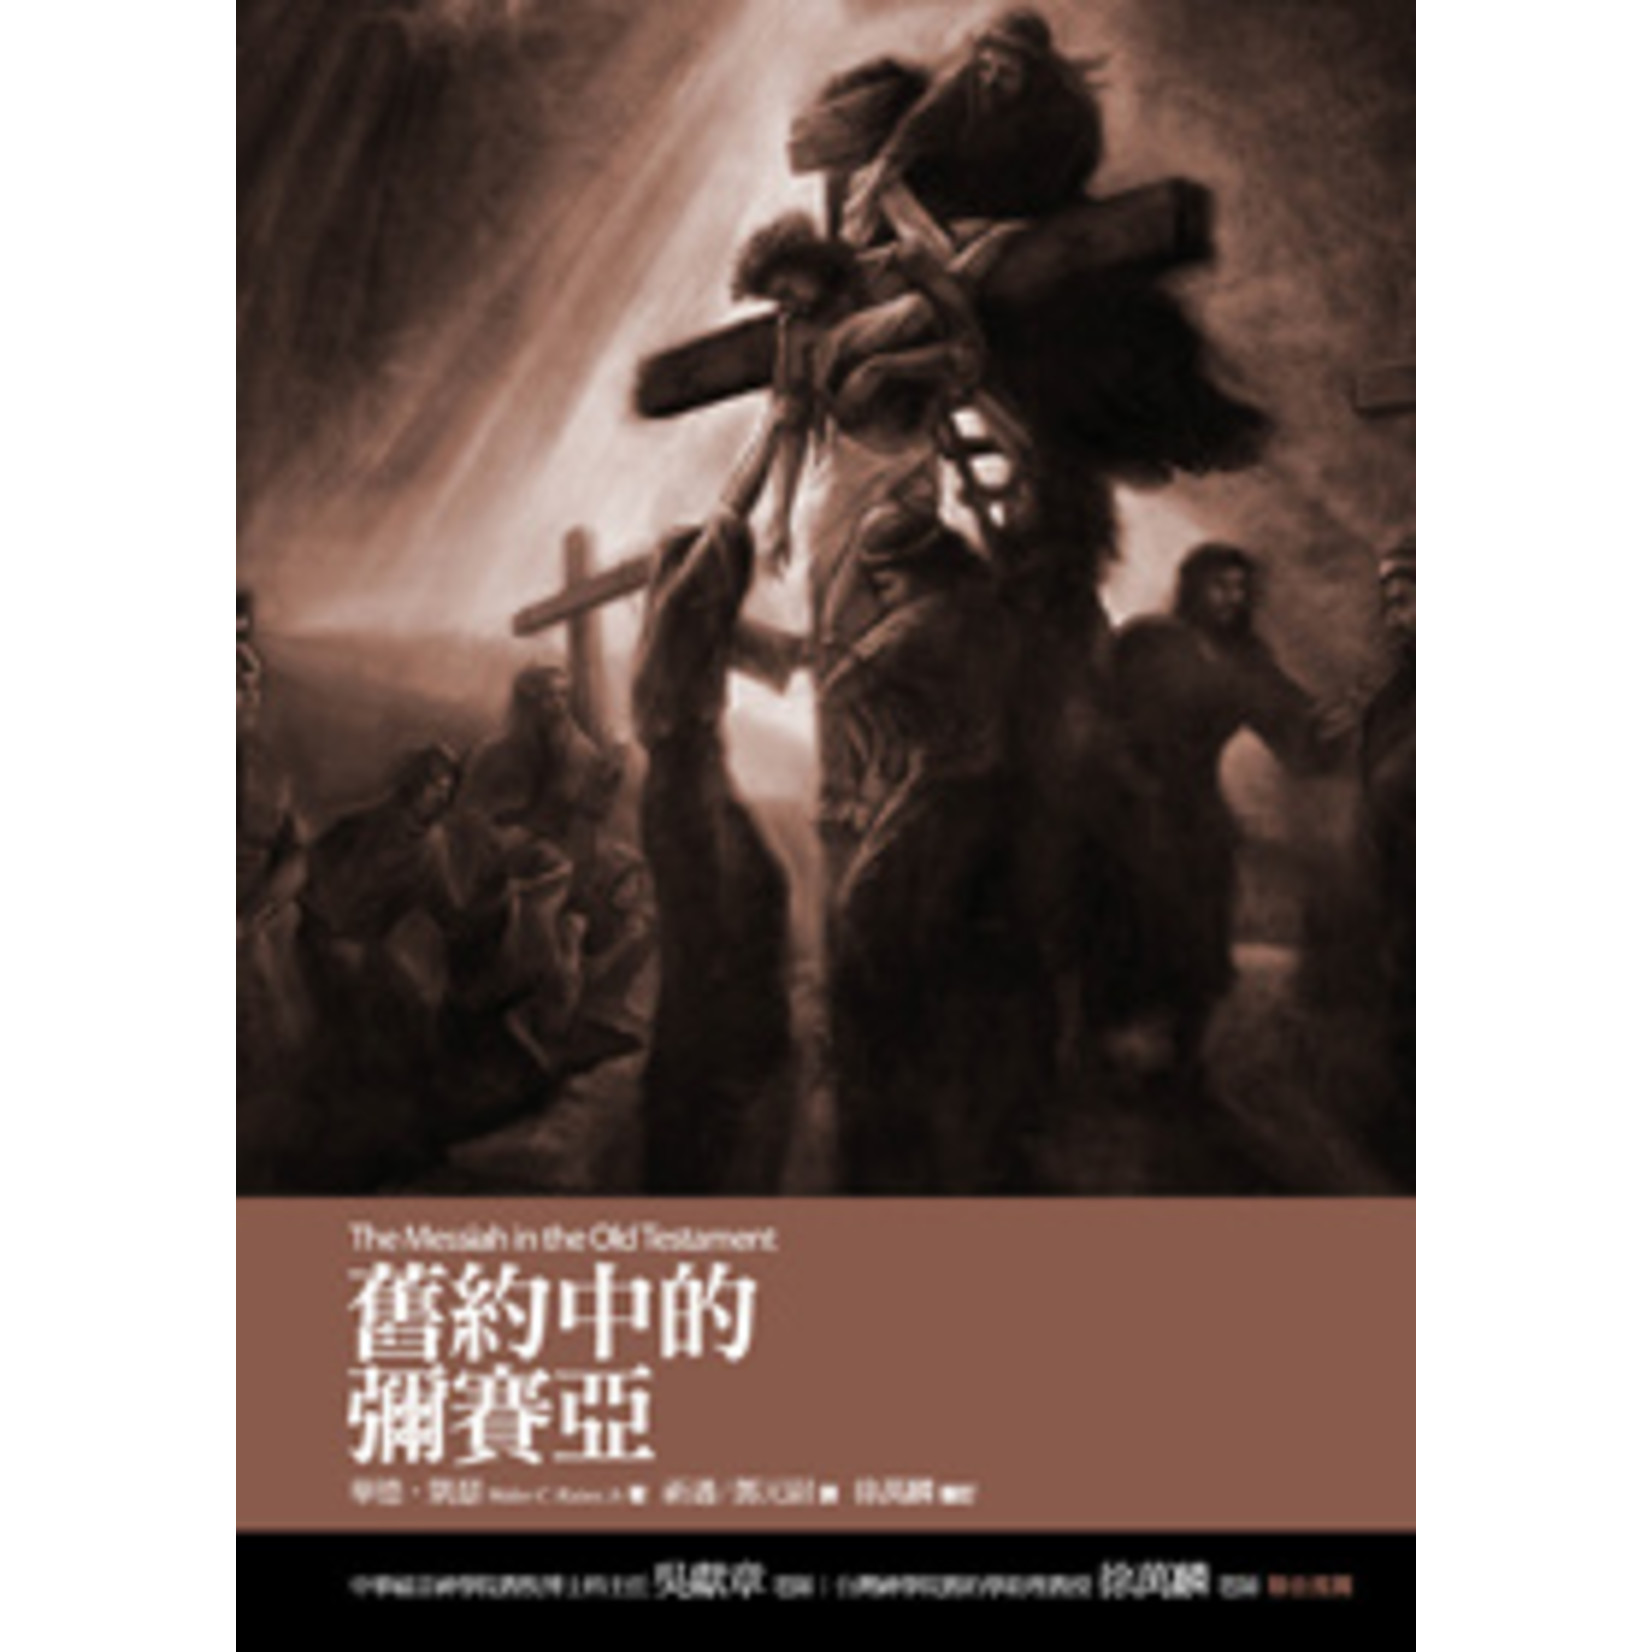 中華福音神學院 China Evangelical Seminary 舊約中的彌賽亞 The Messiah in the Old Testament